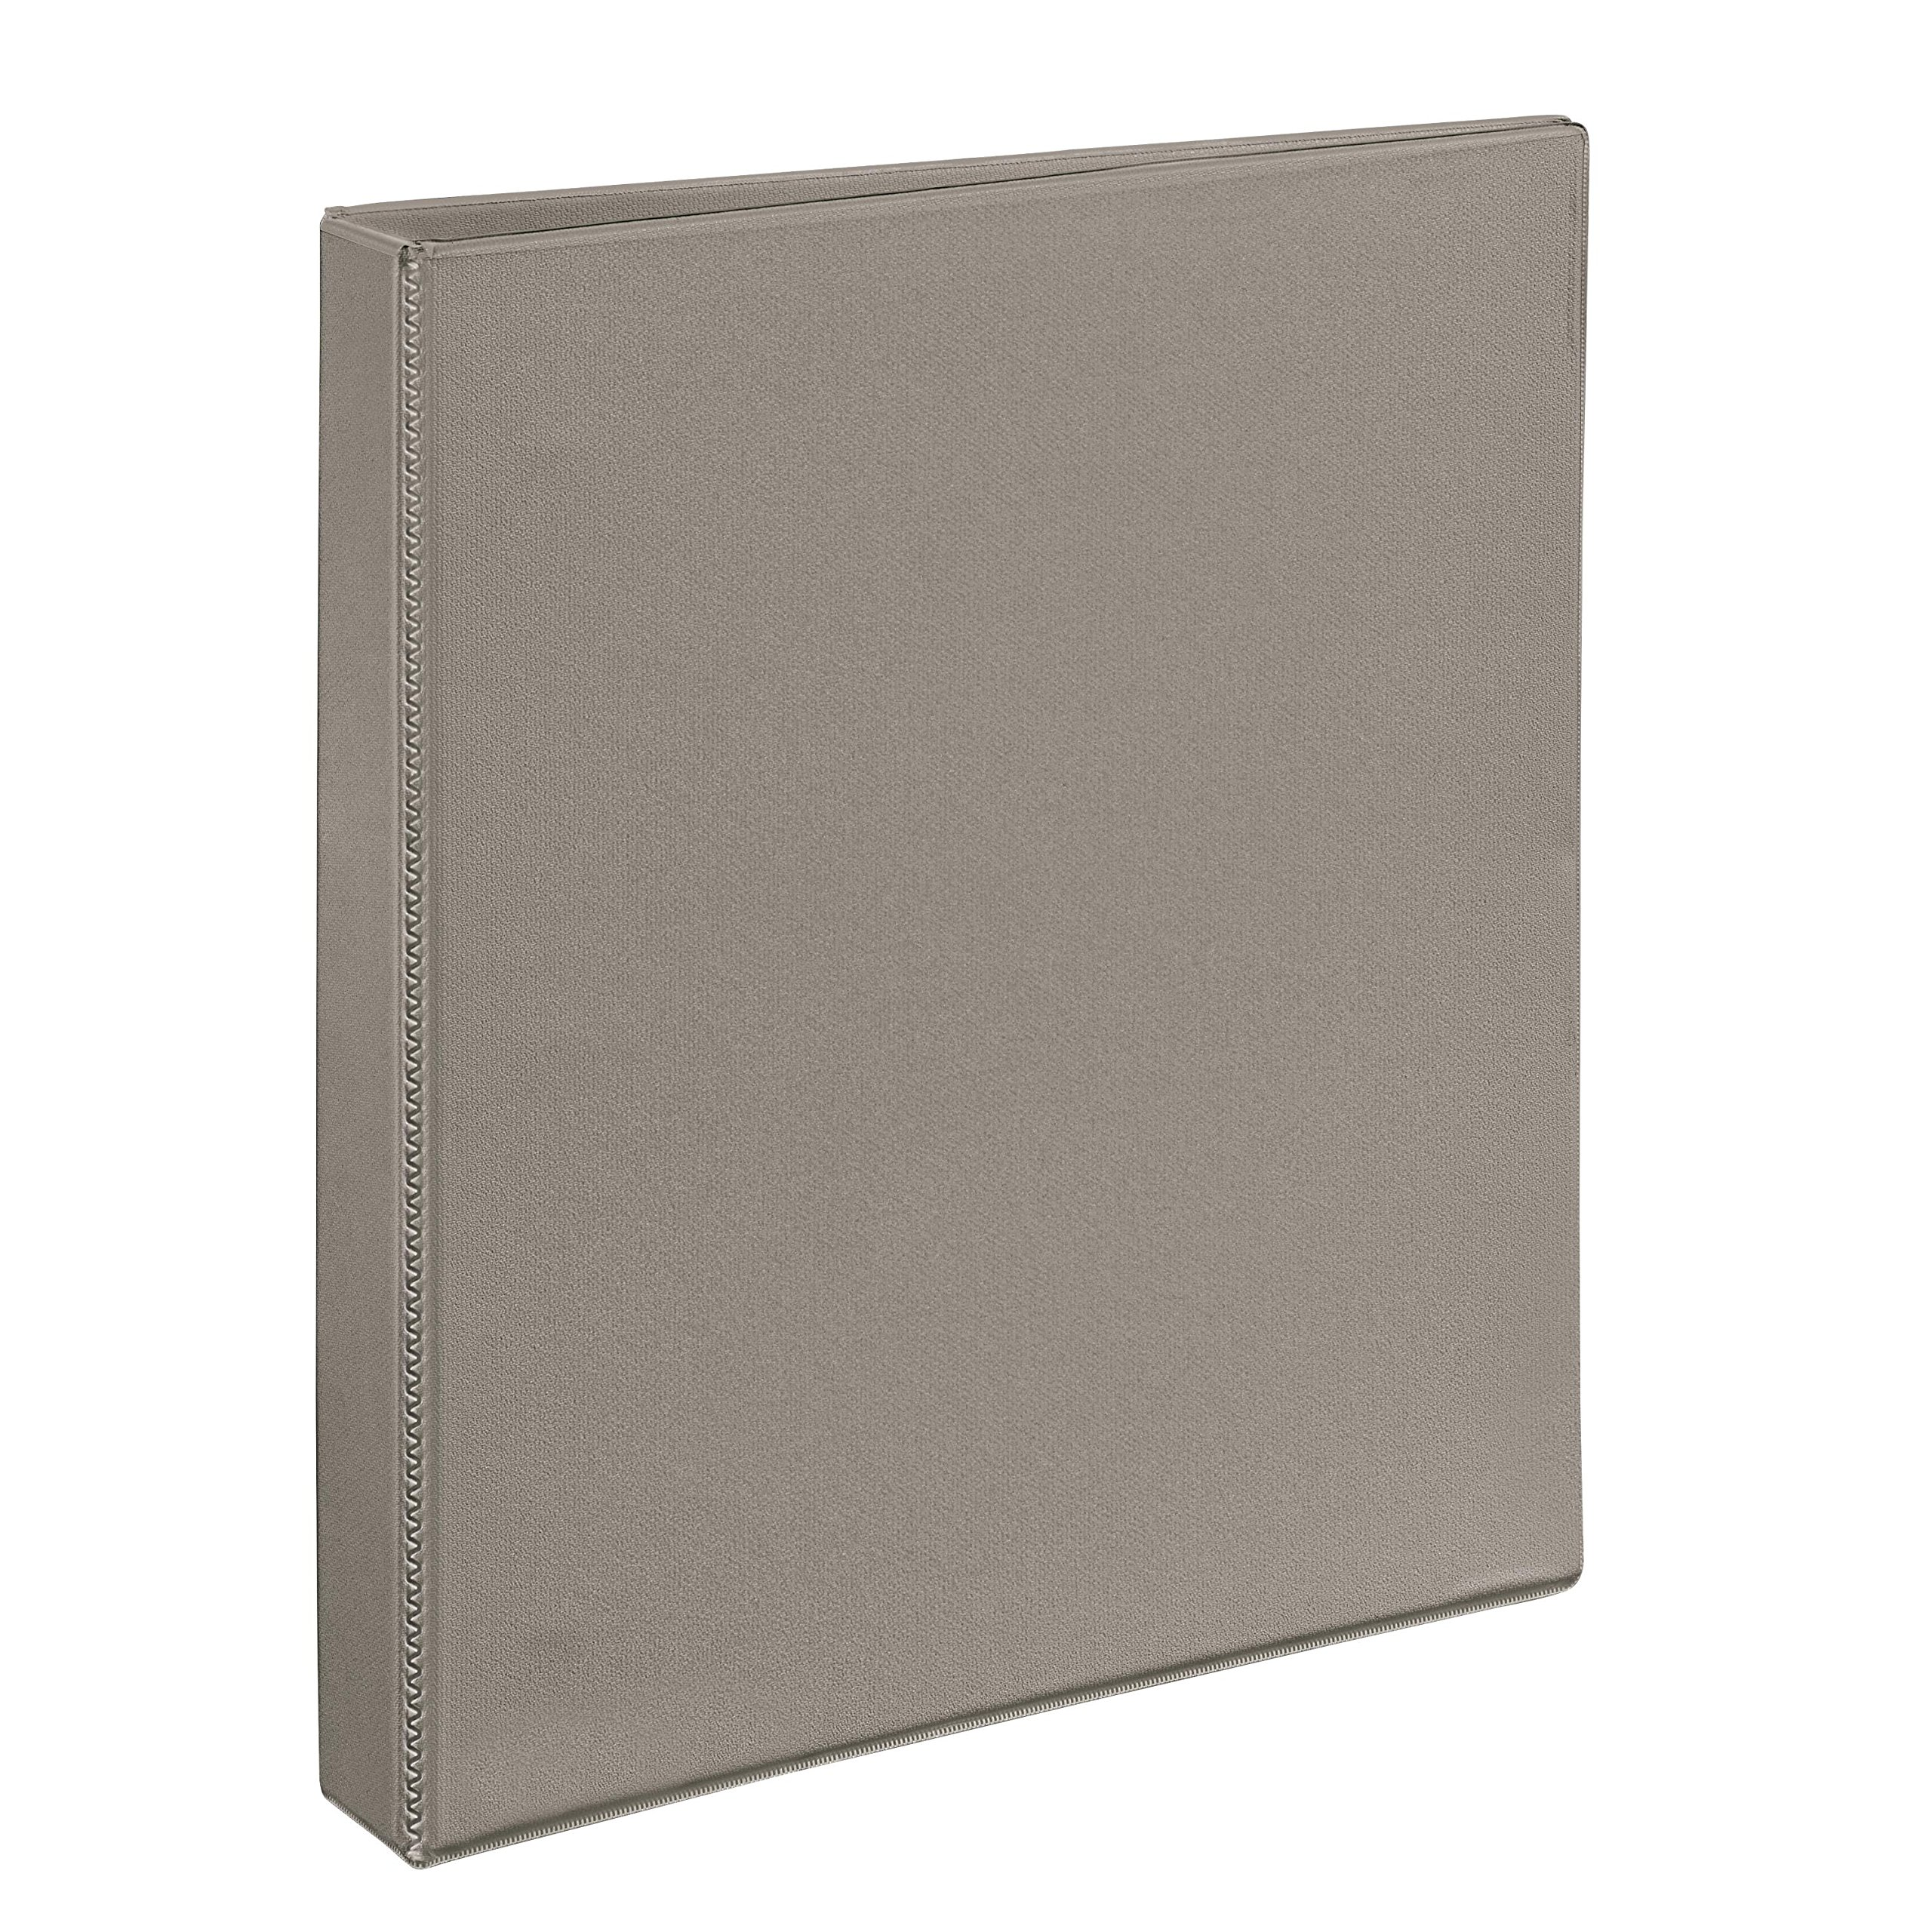 Avery Heavy-Duty View Binder with 1-Inch One Touch EZD Rings, Sand, 1 Binder (79331)